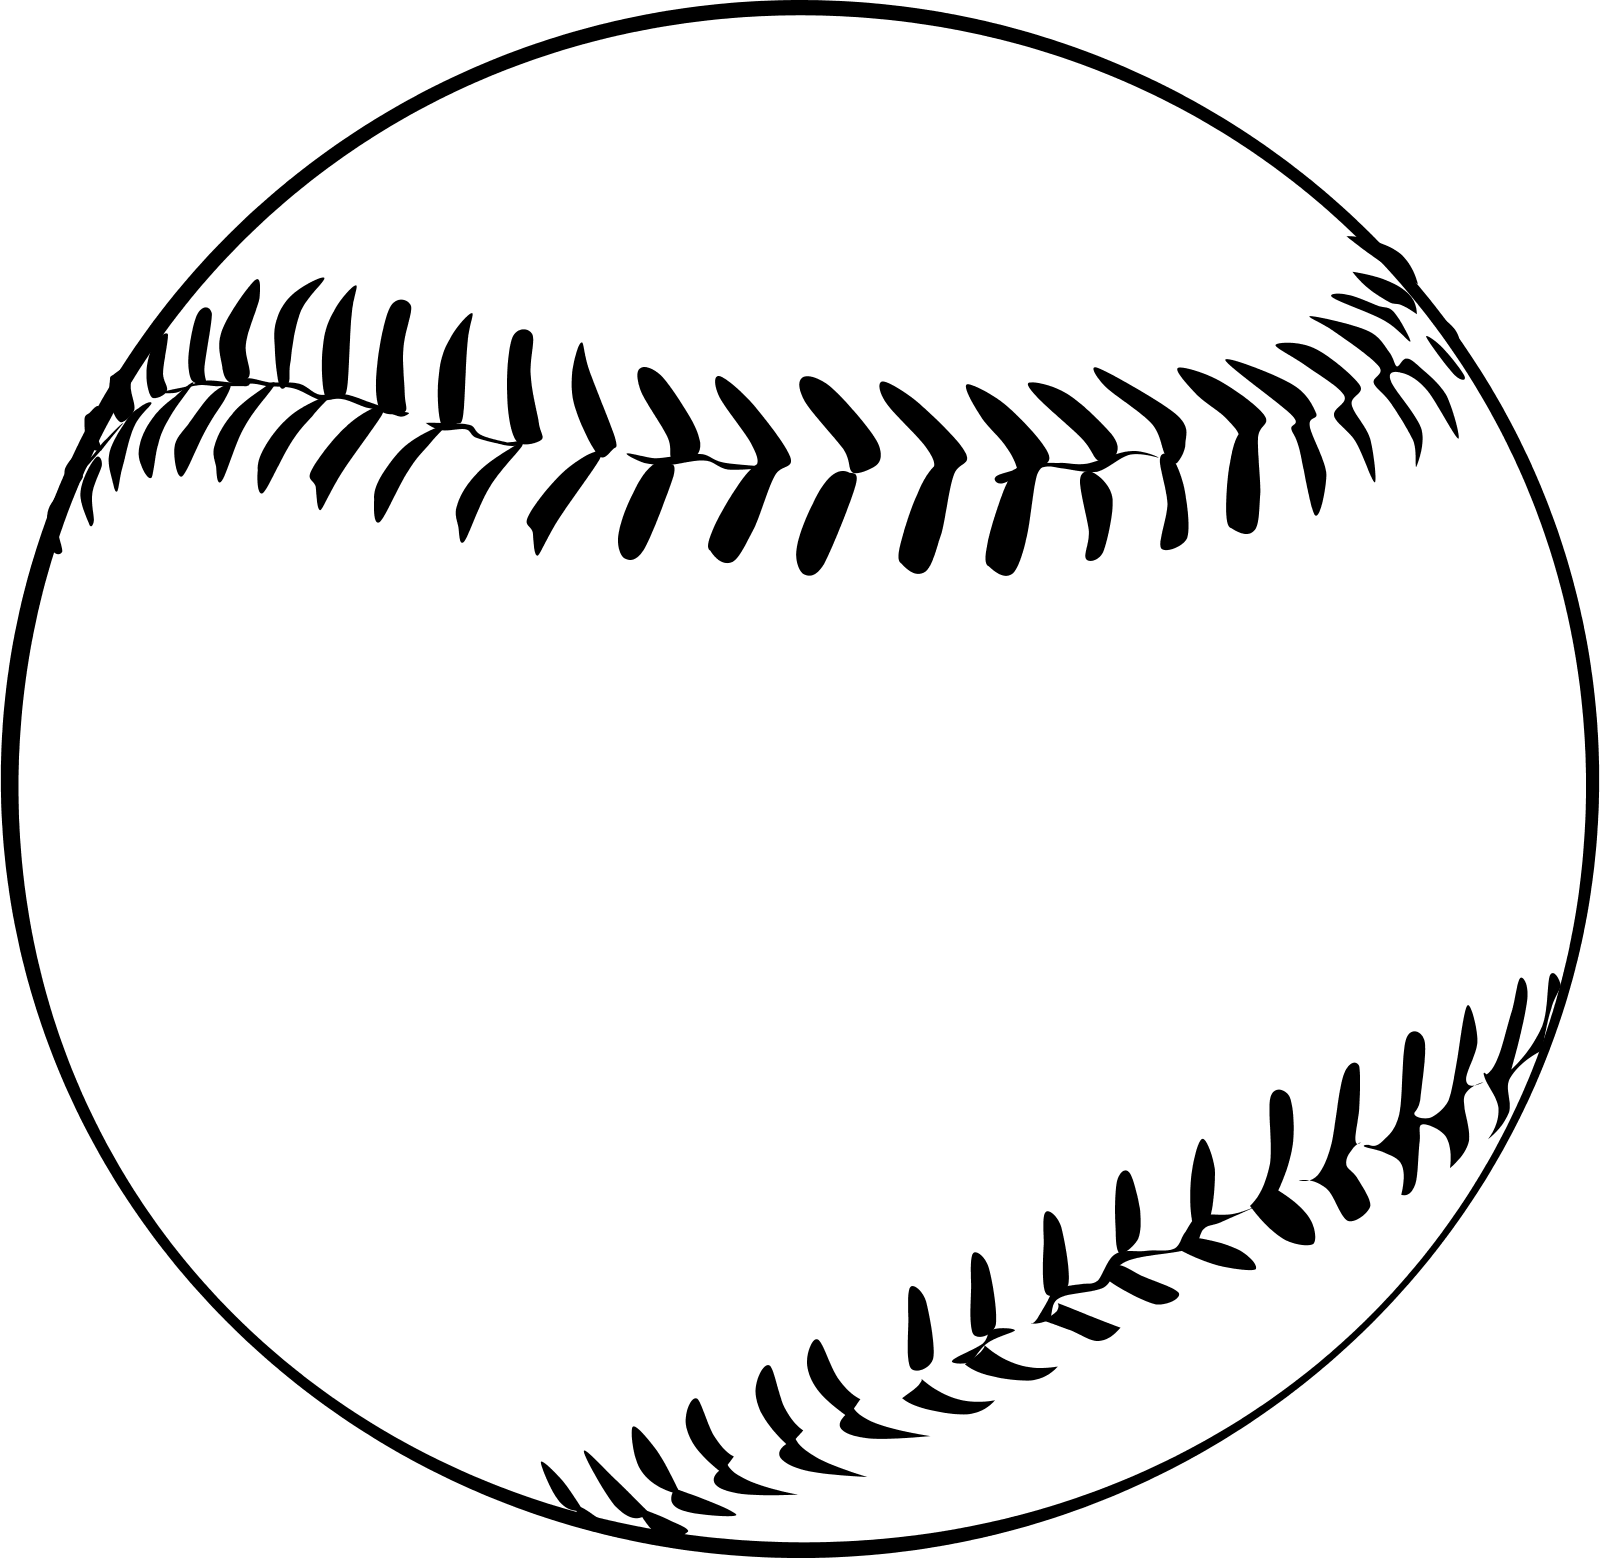 Black and white png. Baseball stadium advertising clipart